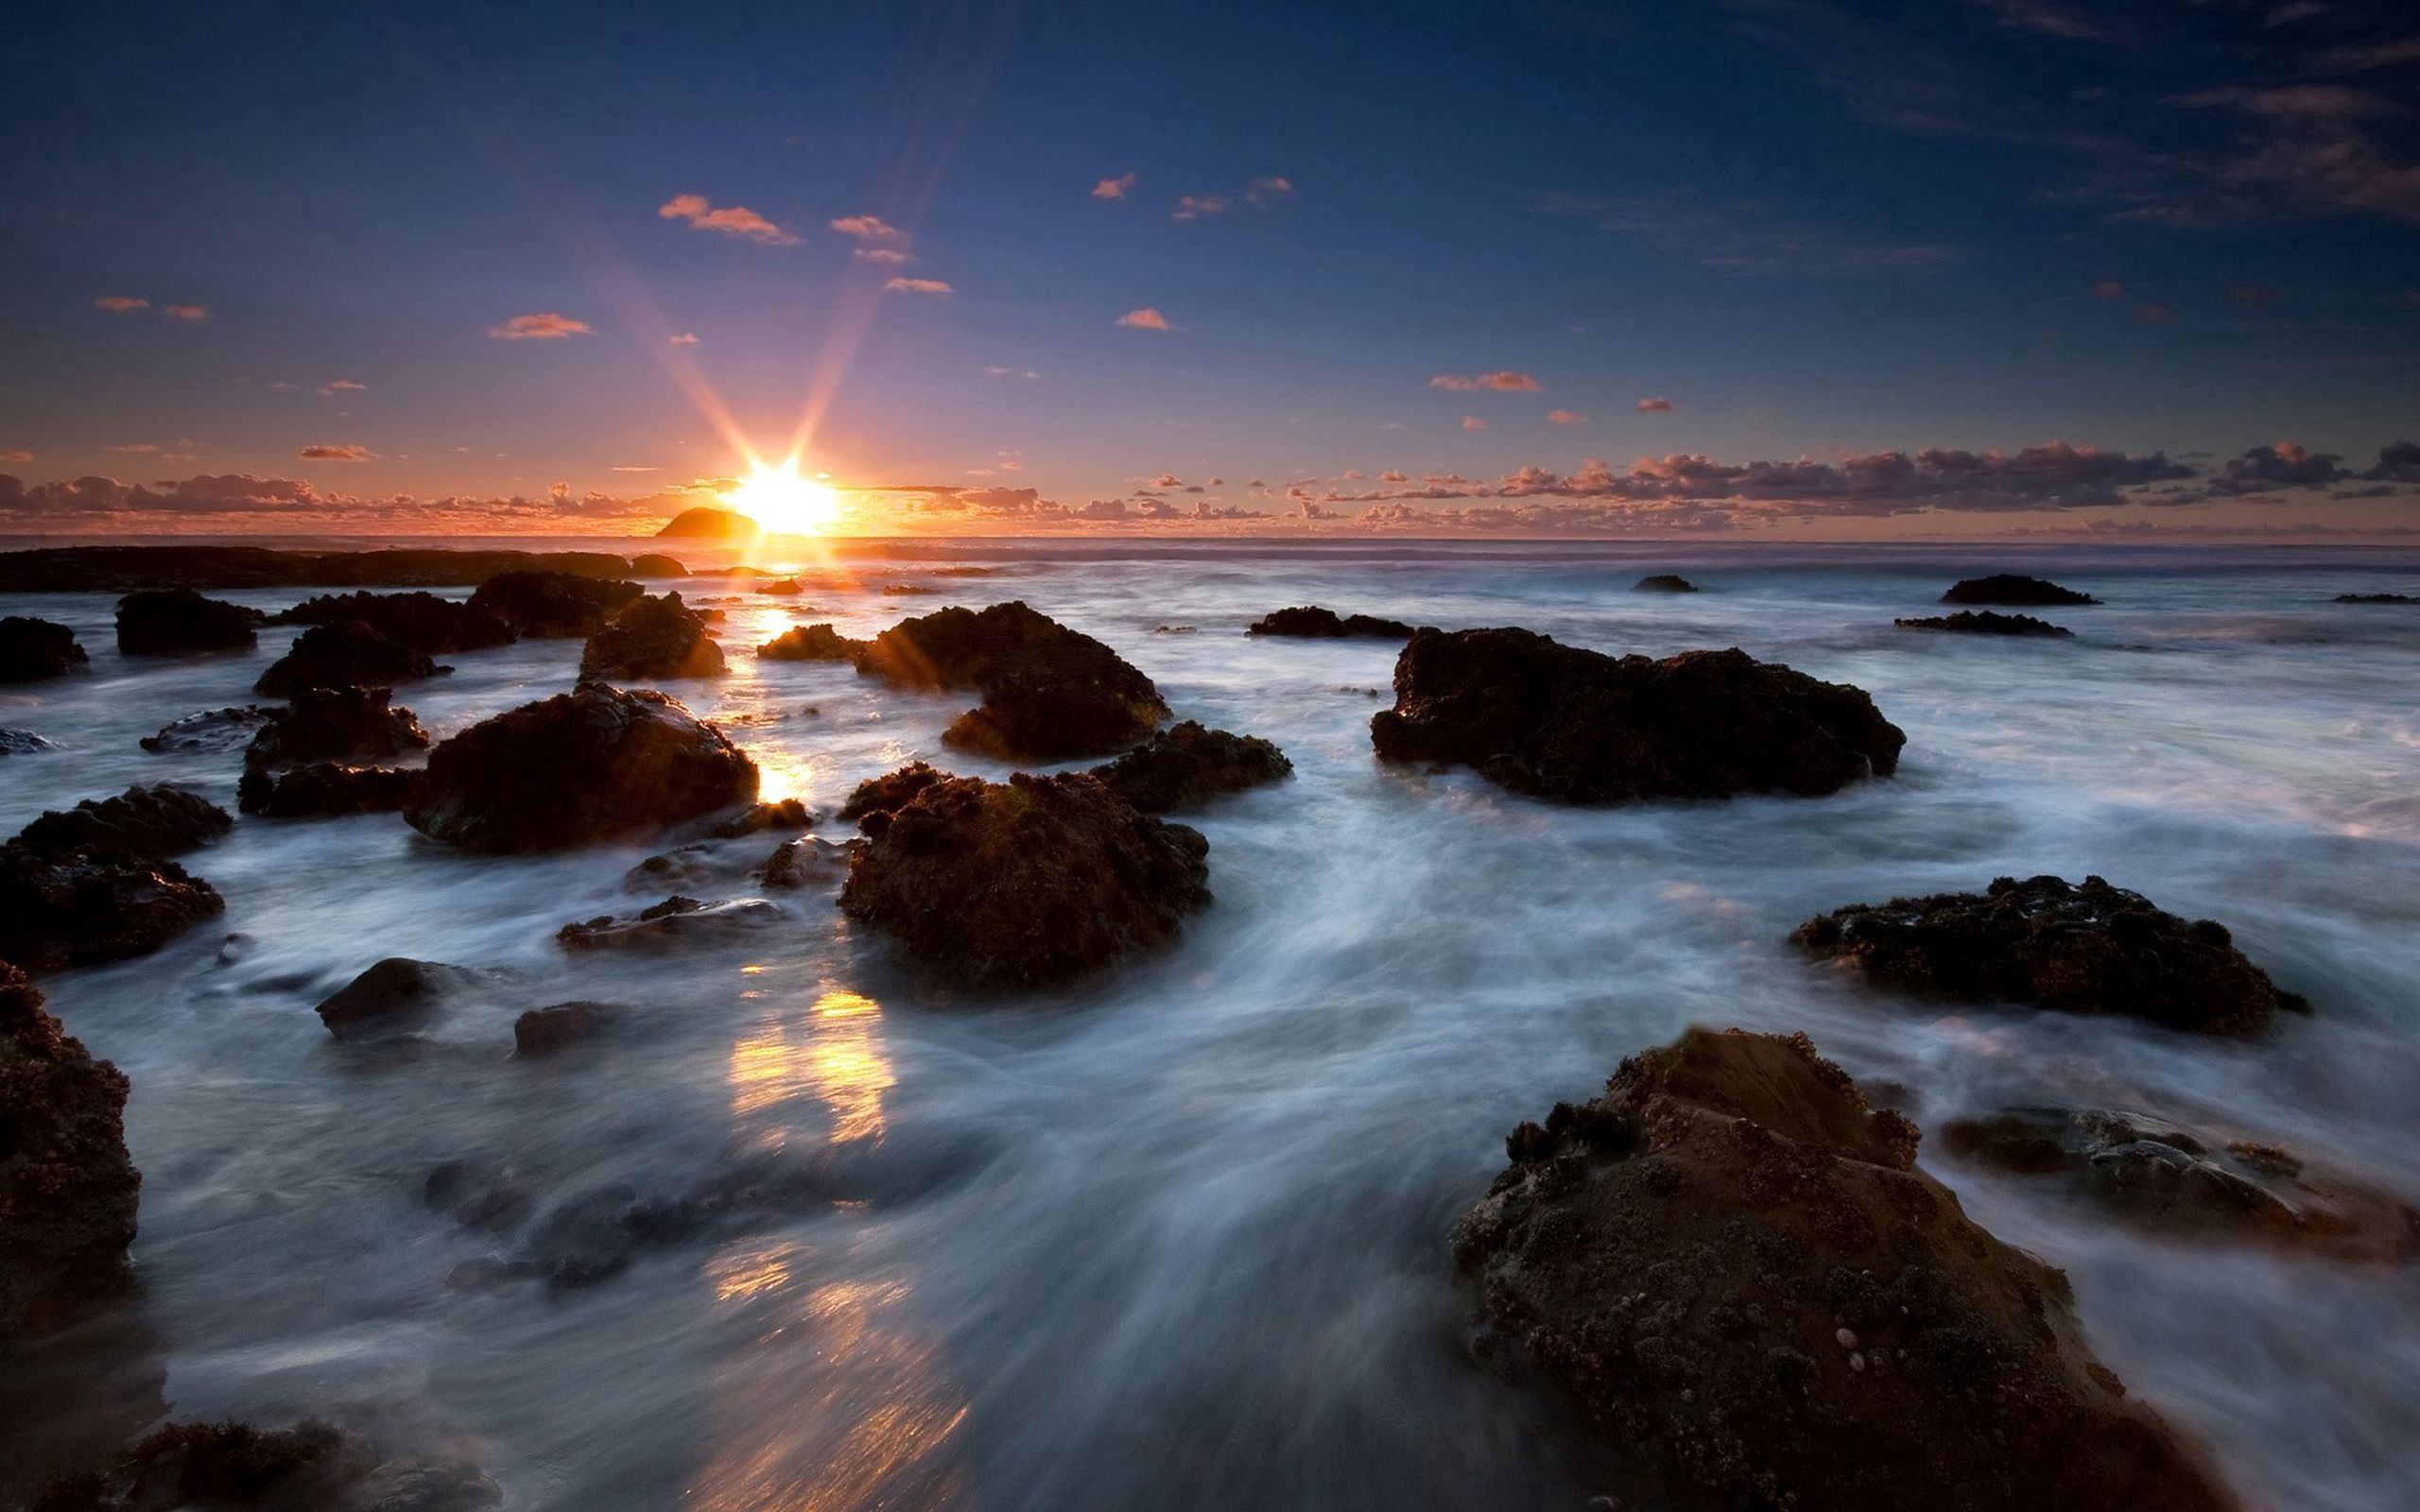 50548 download wallpaper Nature, Foam, Stones, Sea, Shine, Light screensavers and pictures for free